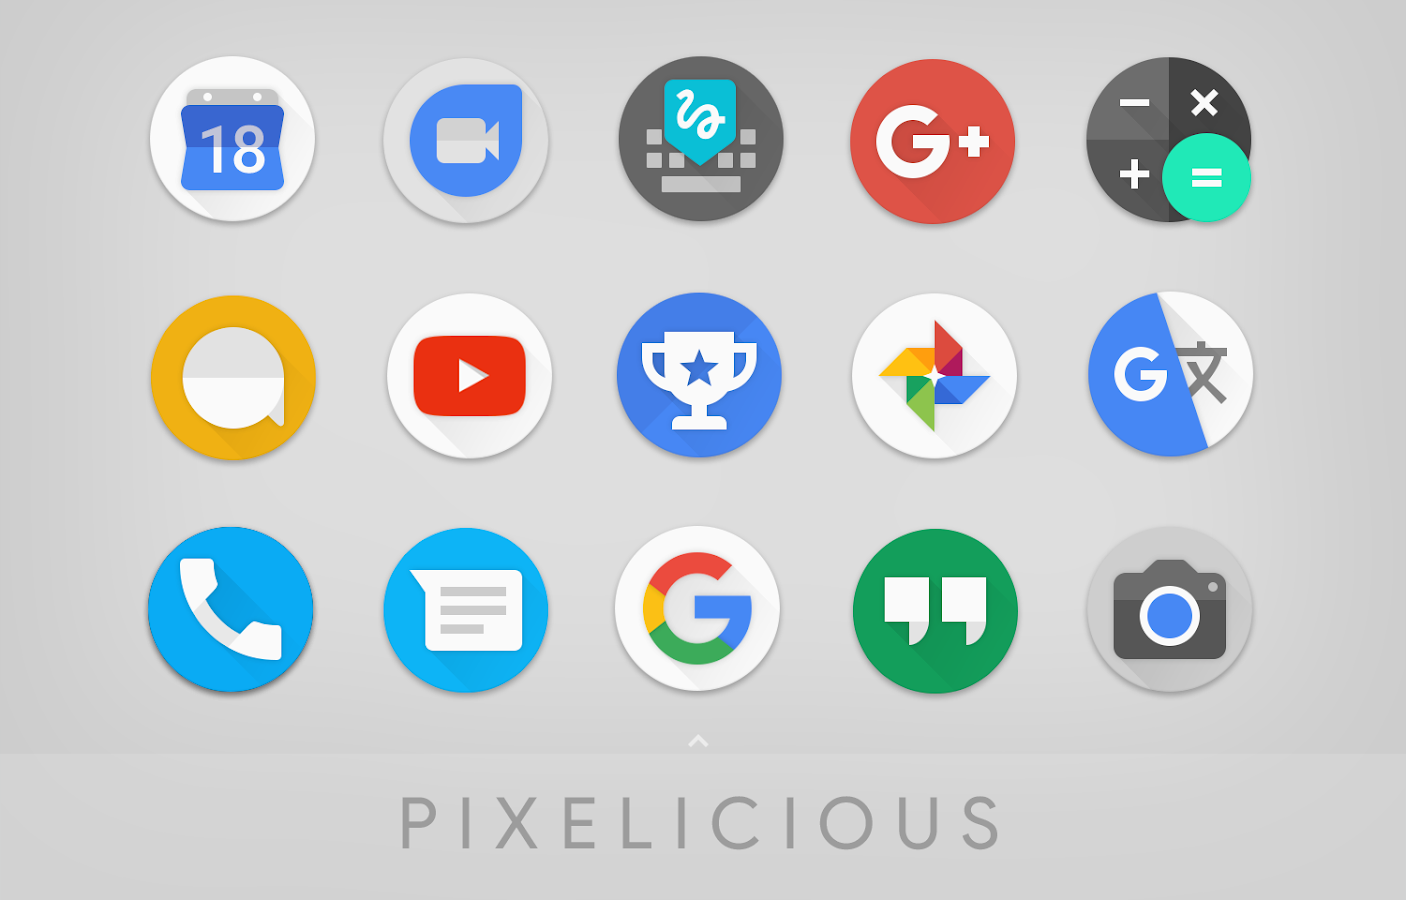 PIXELICIOUS ICON PACK Screenshot 6